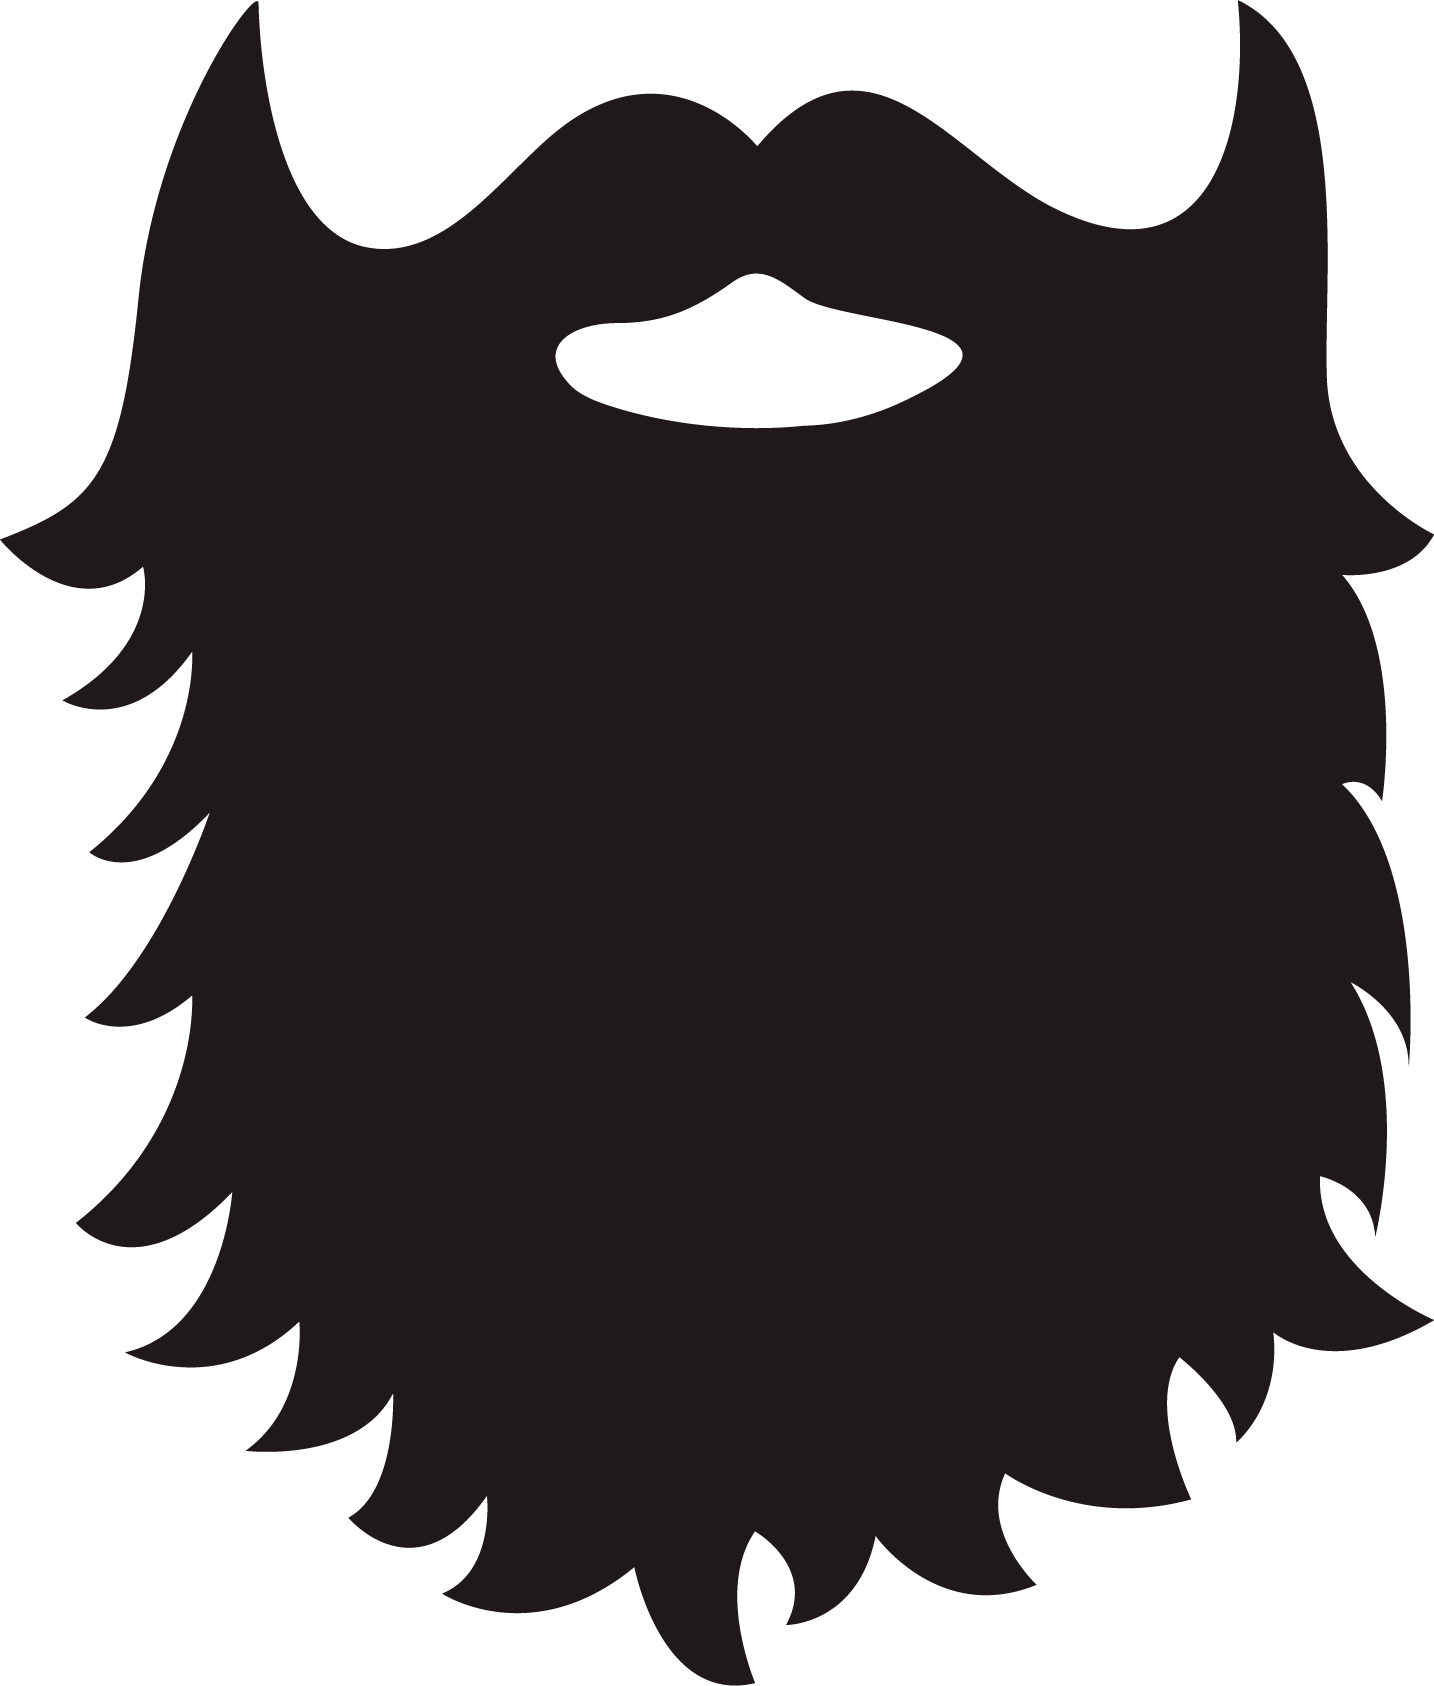 png freeuse download Beard clipart picsart. Png images free download